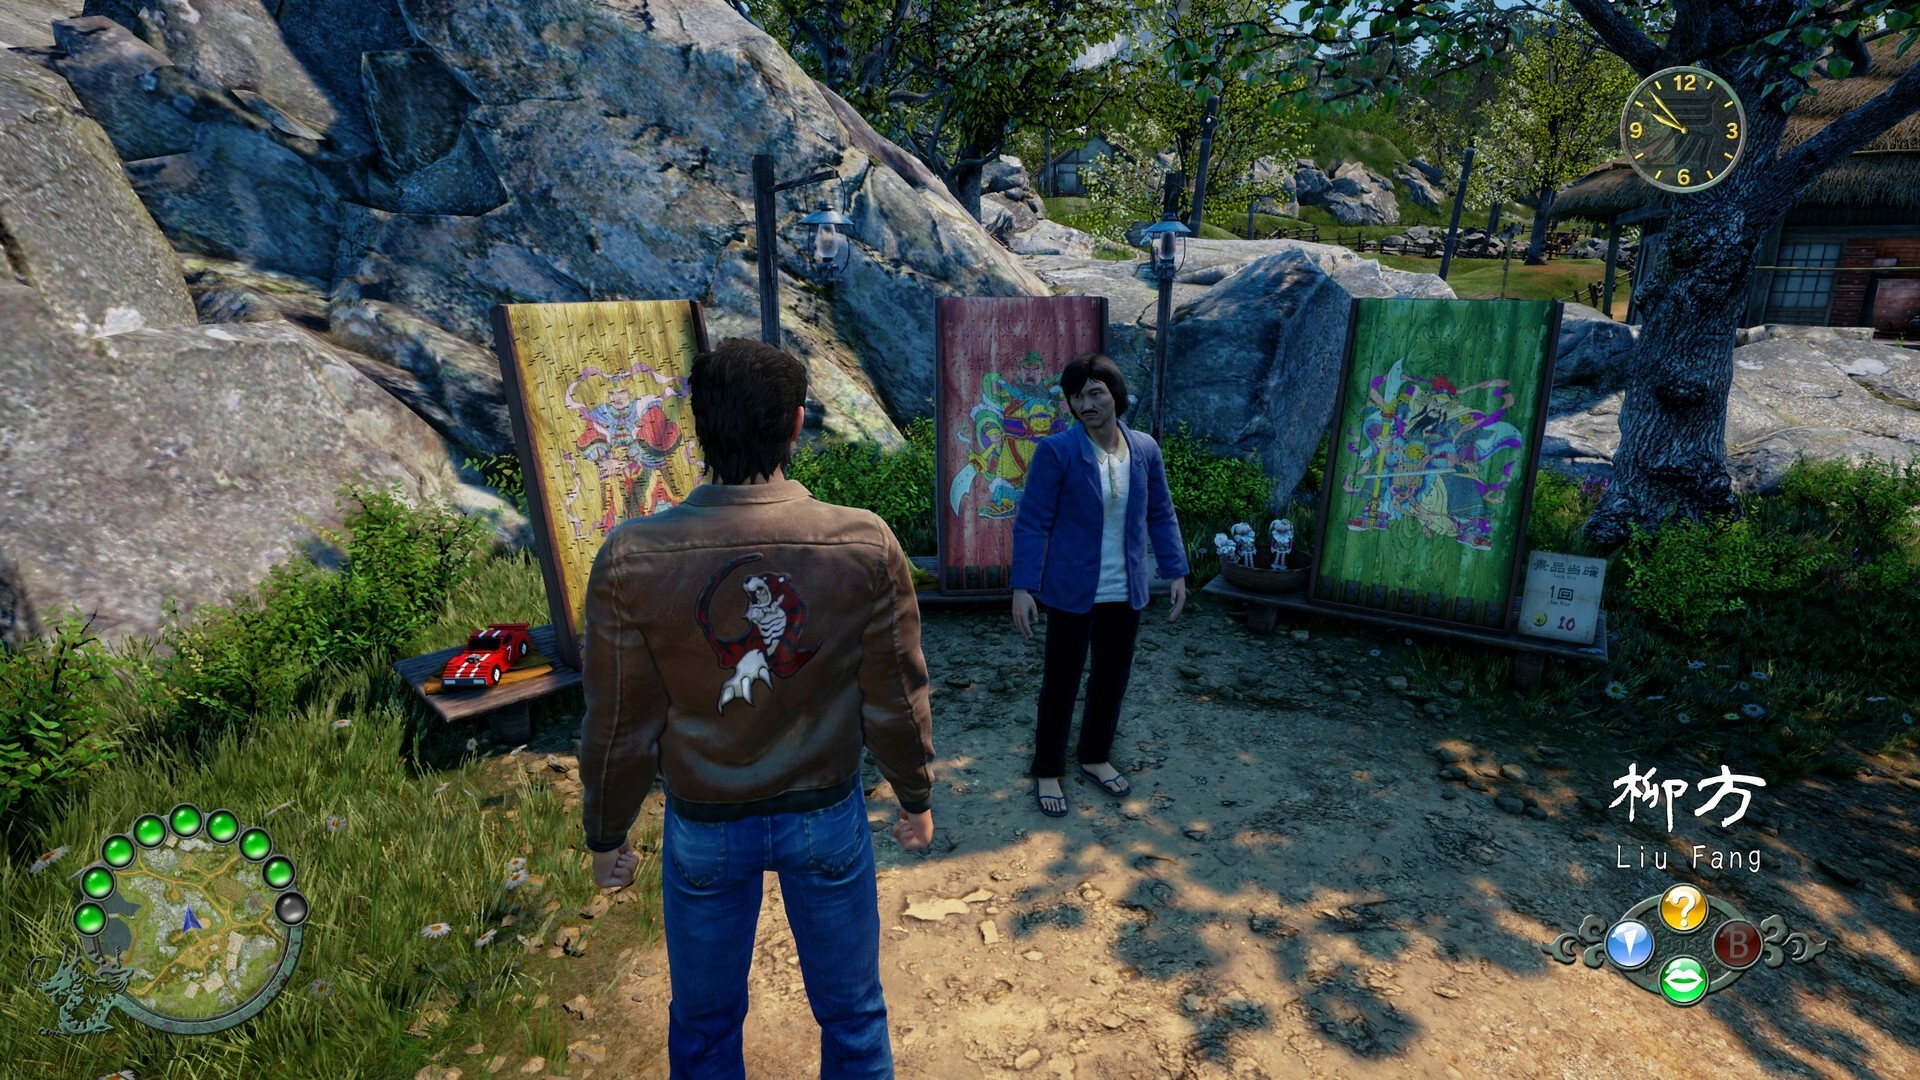 shenmue-3-deluxe-edition-pc-screenshot-01